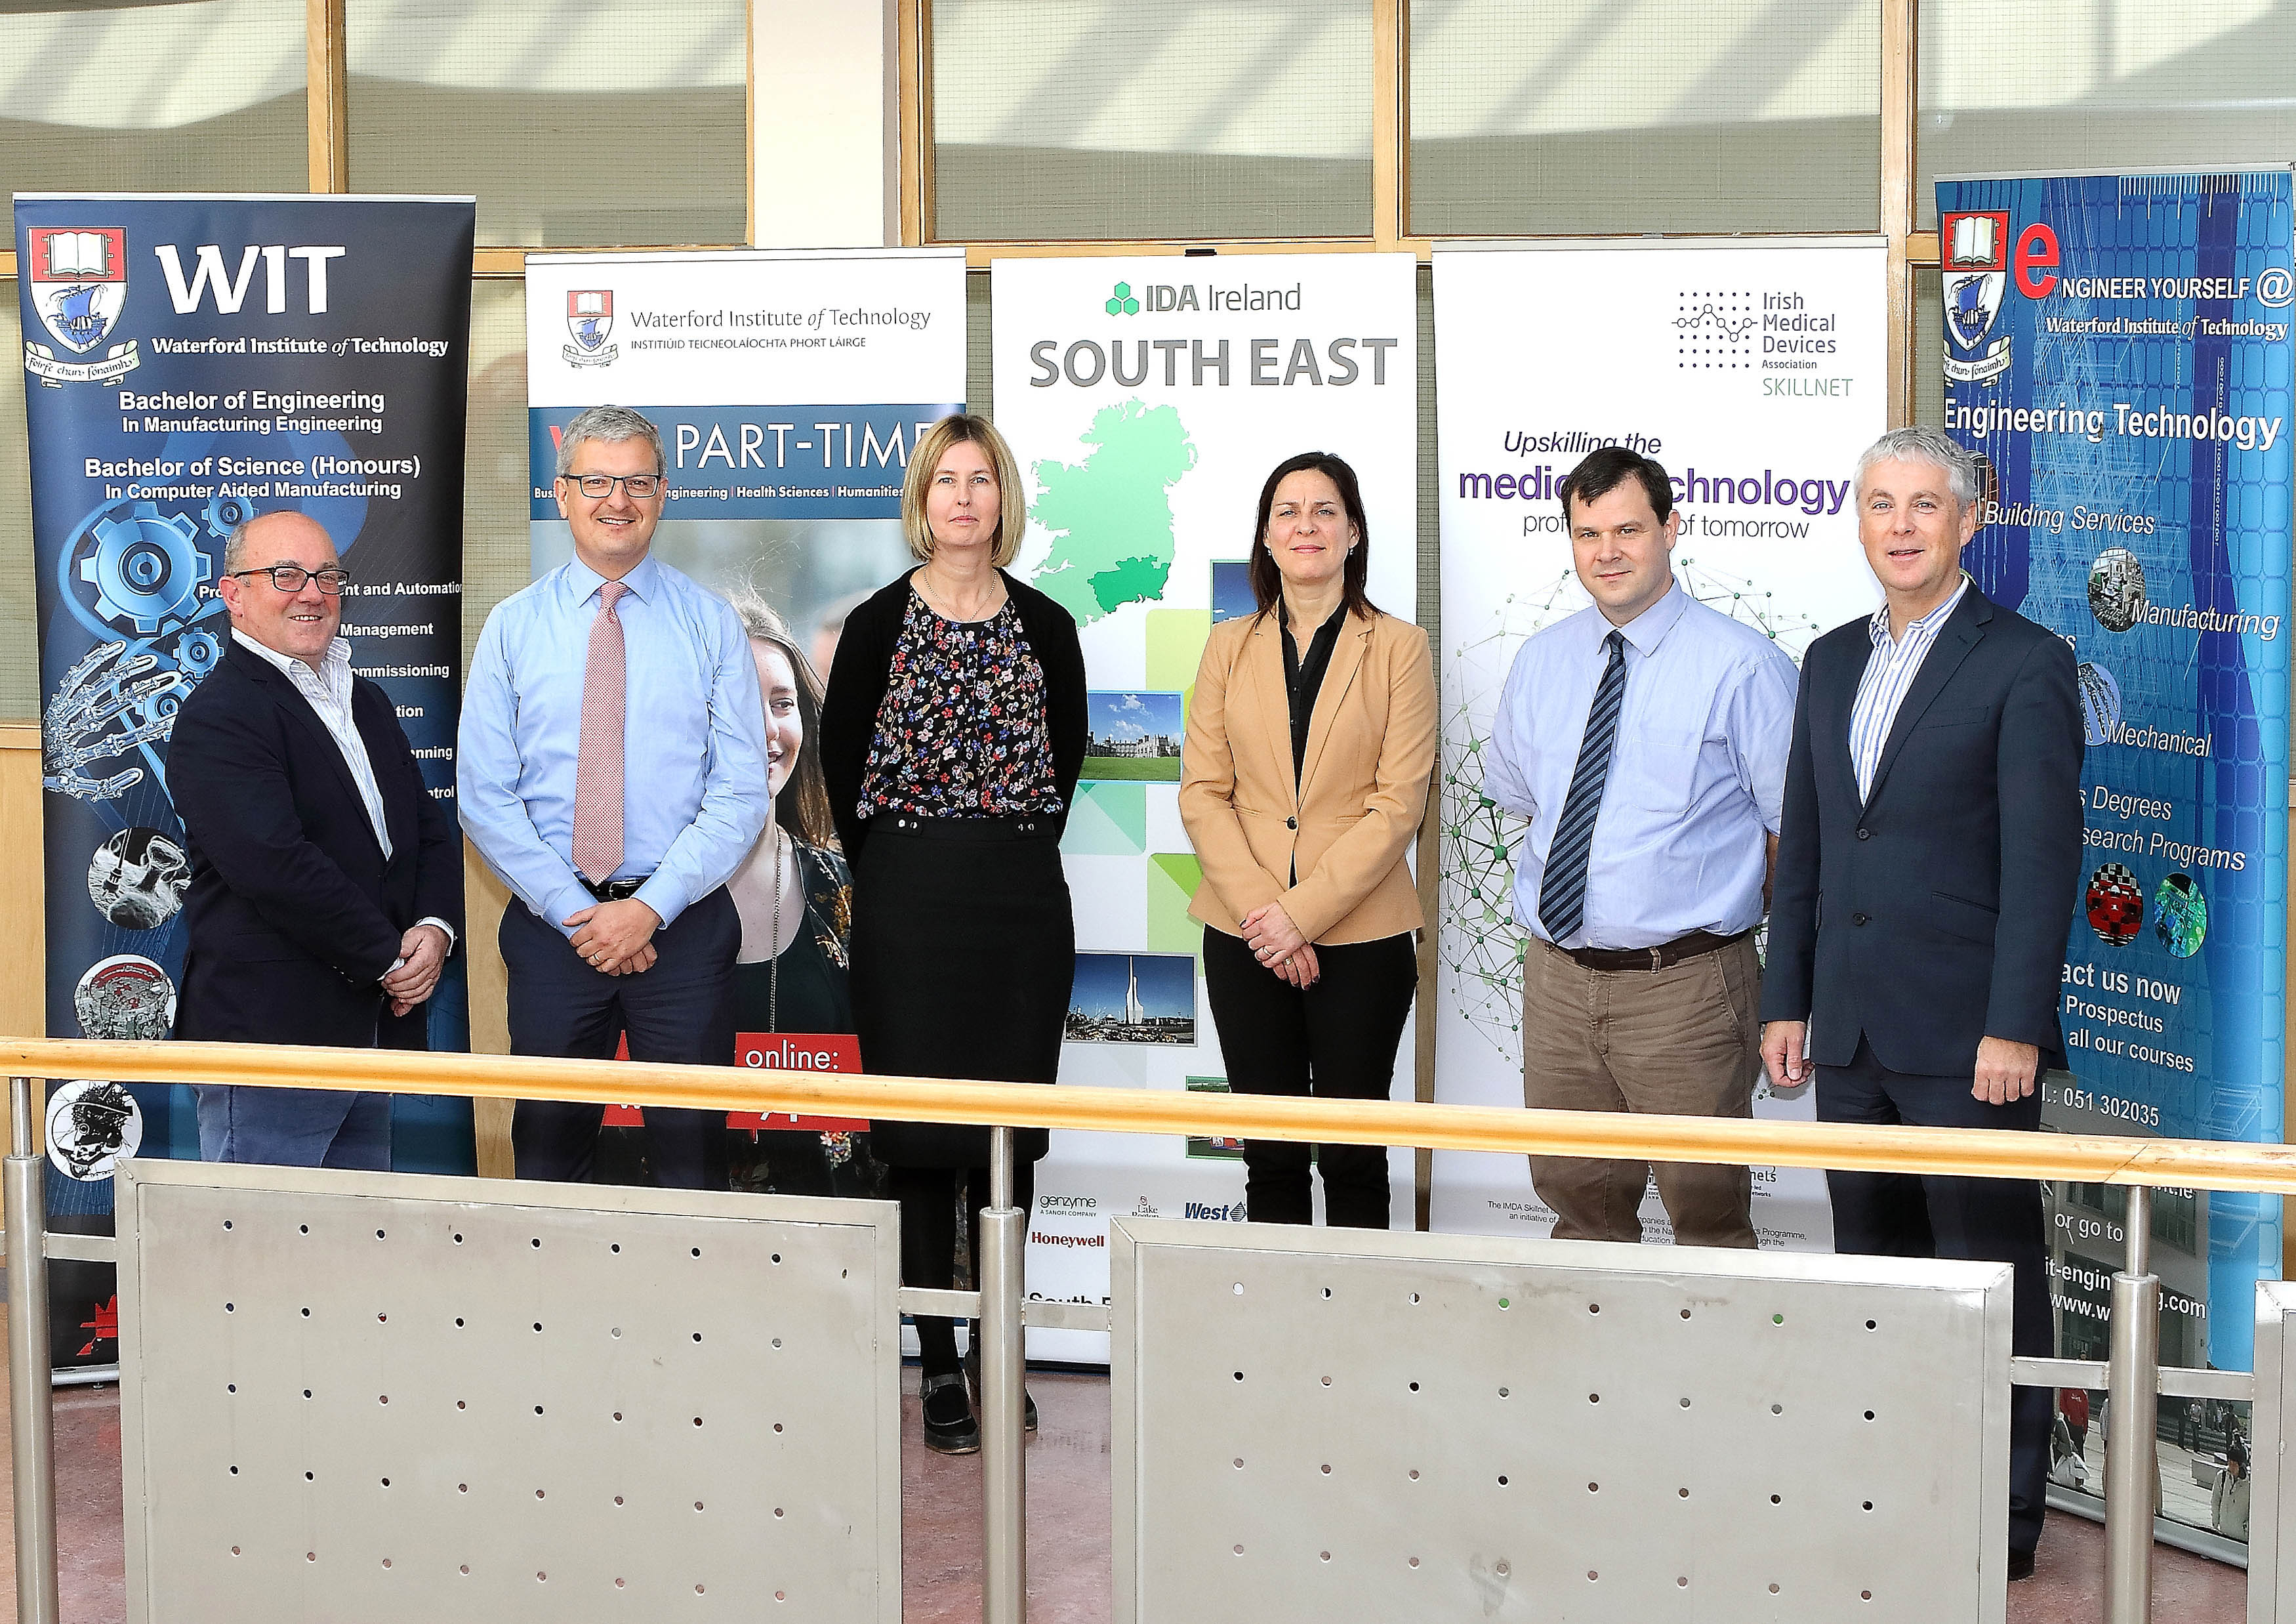 Pictured at the launch are, from left: Albert Byrne, Engineering Technology WIT; Neil Quinlan, Lifelong Learning WIT; Fiona Lonergan, IDA South East; Michelle Reinecke-Quain, IMDA; Con Quinlan, INTREO/DoSP; Ken Thomas, WIT School of Engineering